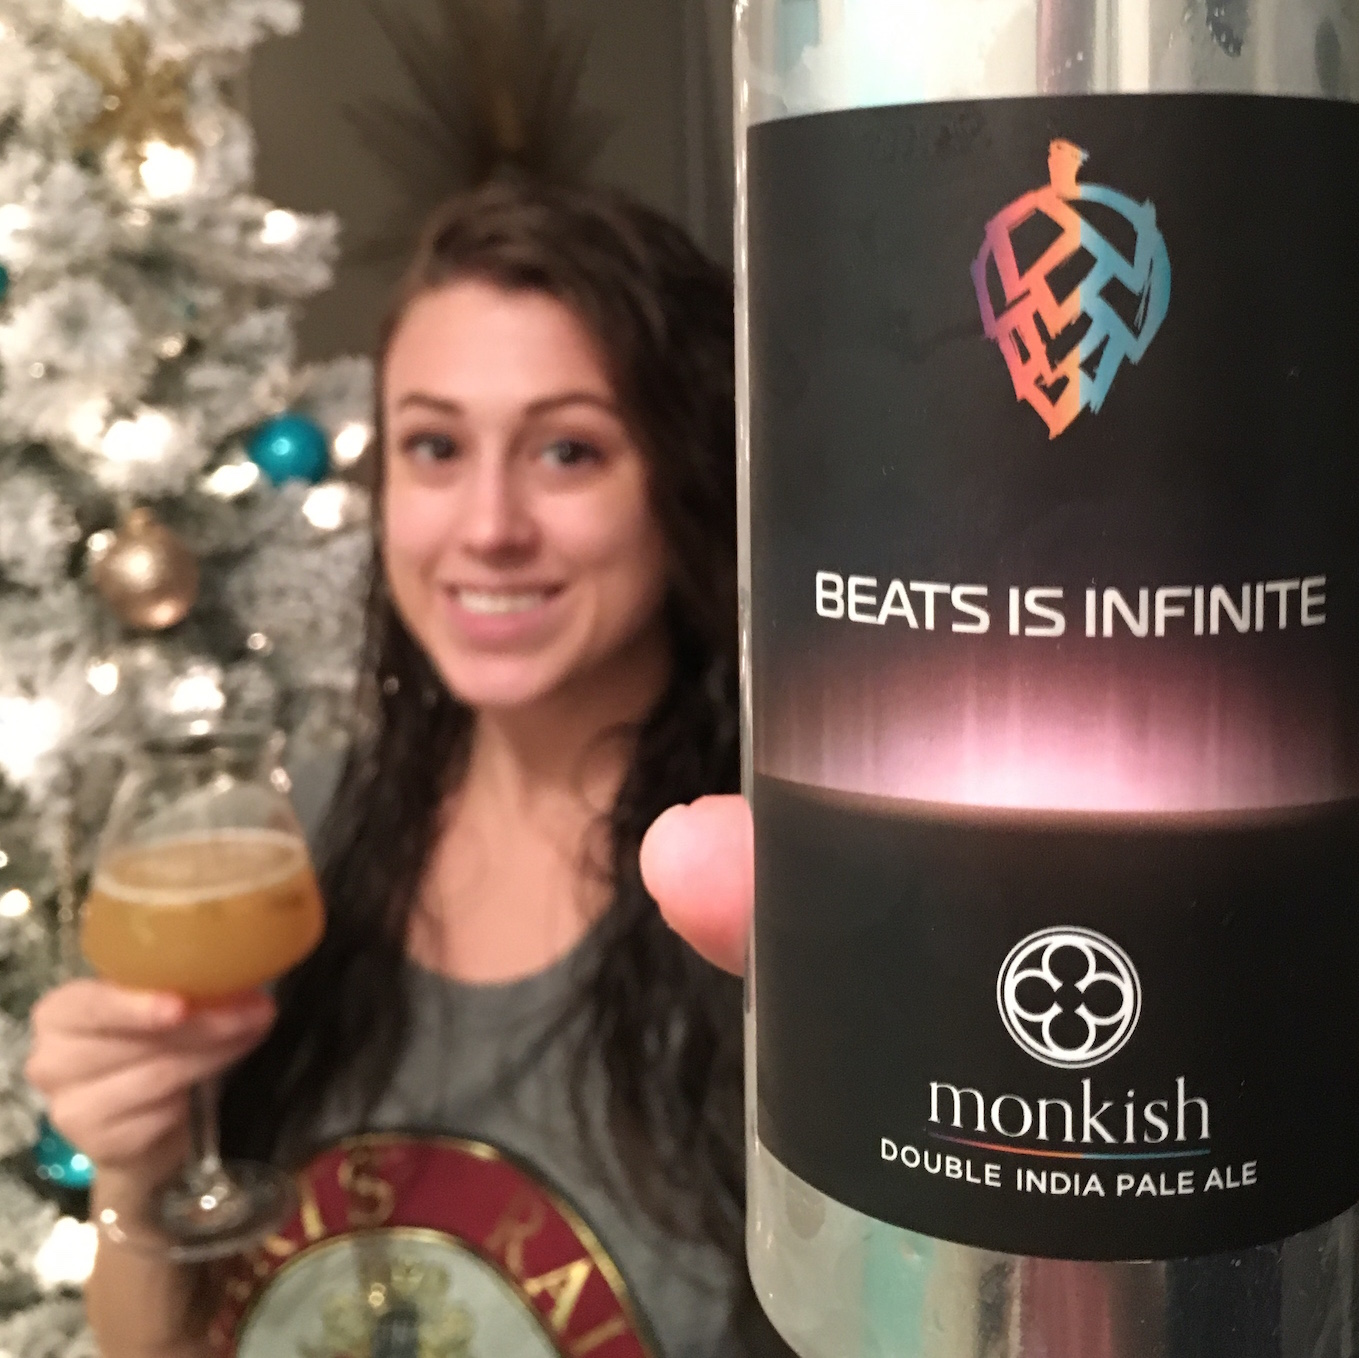 Beats is infinite - Monkish